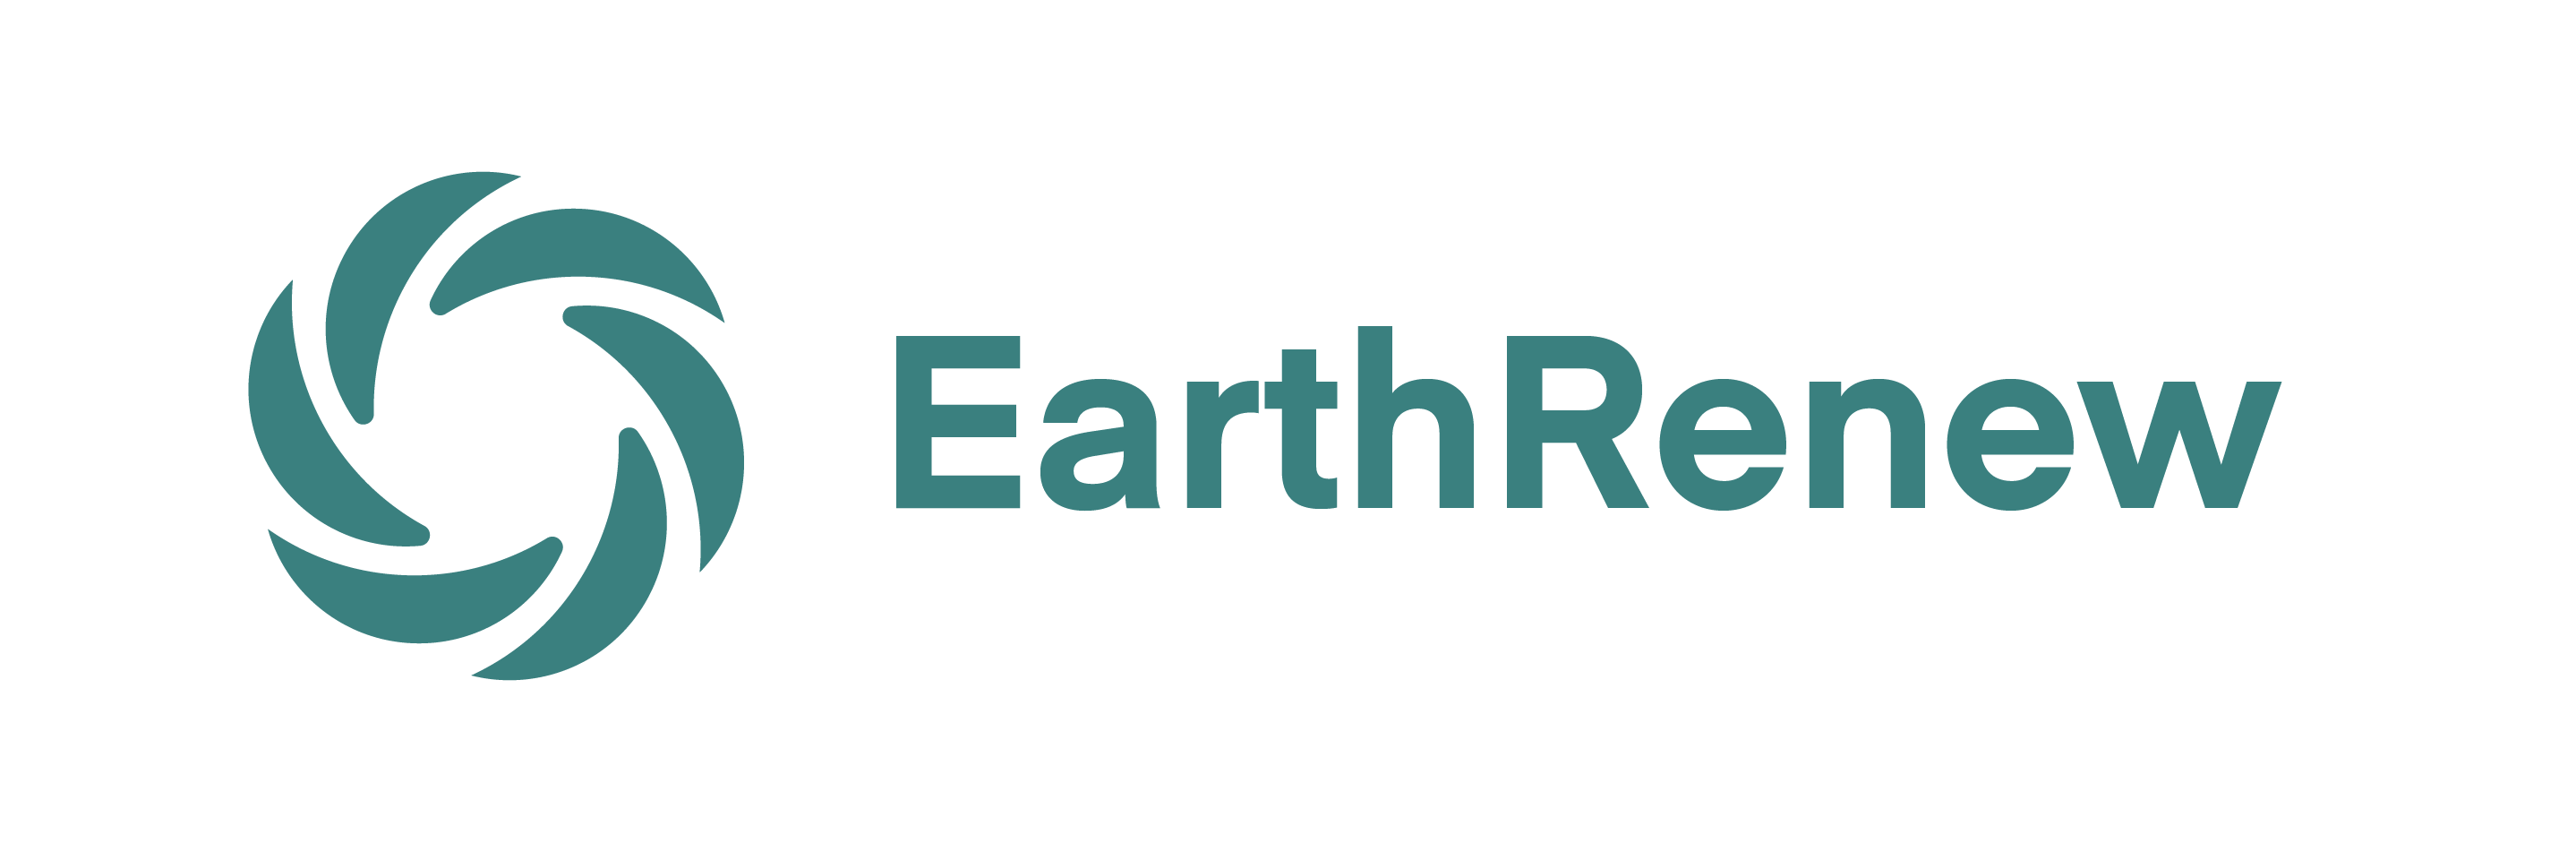 REPEAT - EarthRenew Announces Long-Term Soil Health Field Demonstration Trial